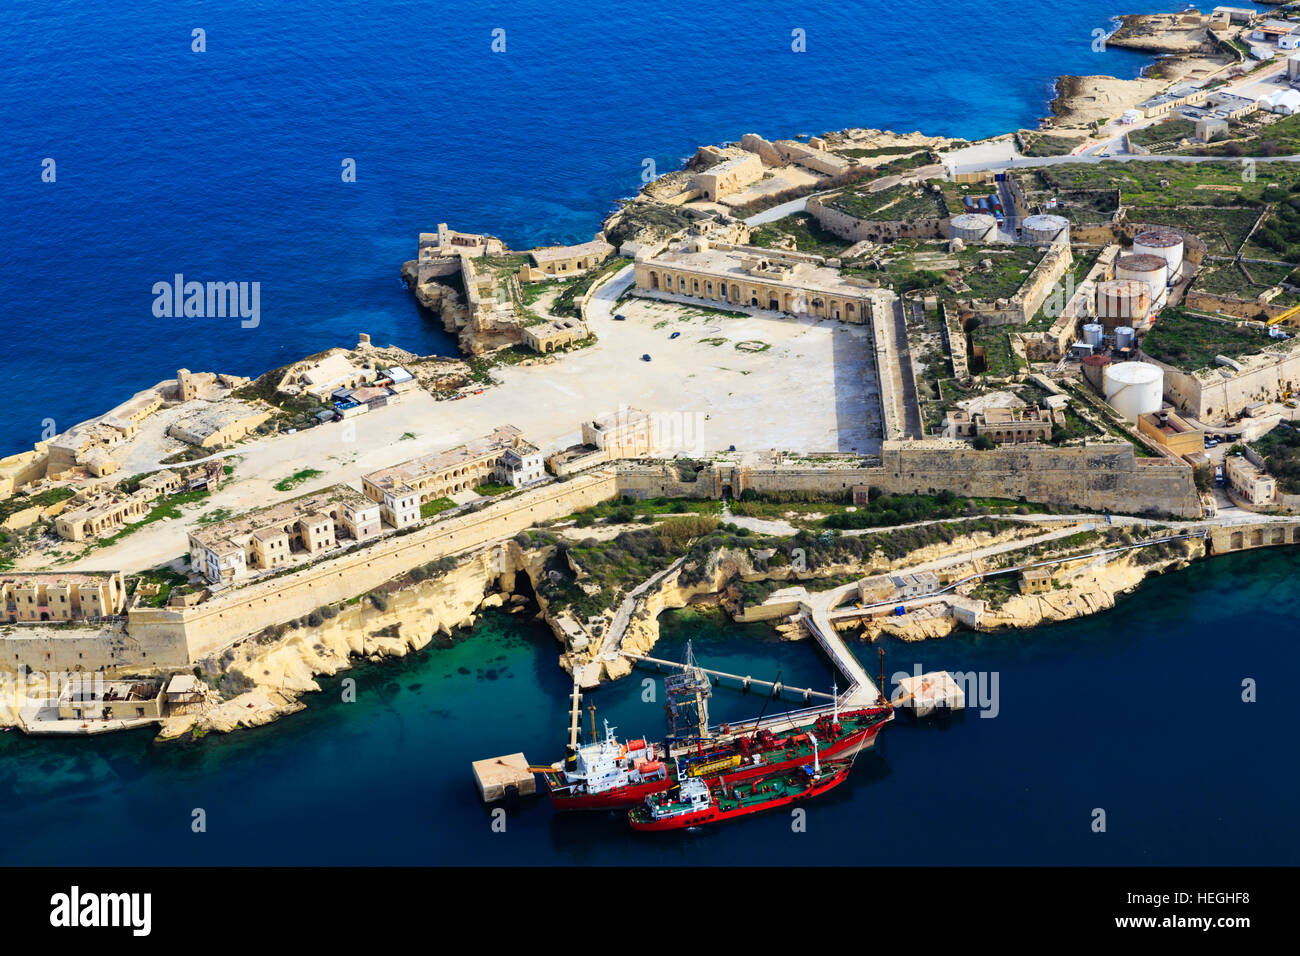 aerial-views-of-ricasoli-fort-and-tanker